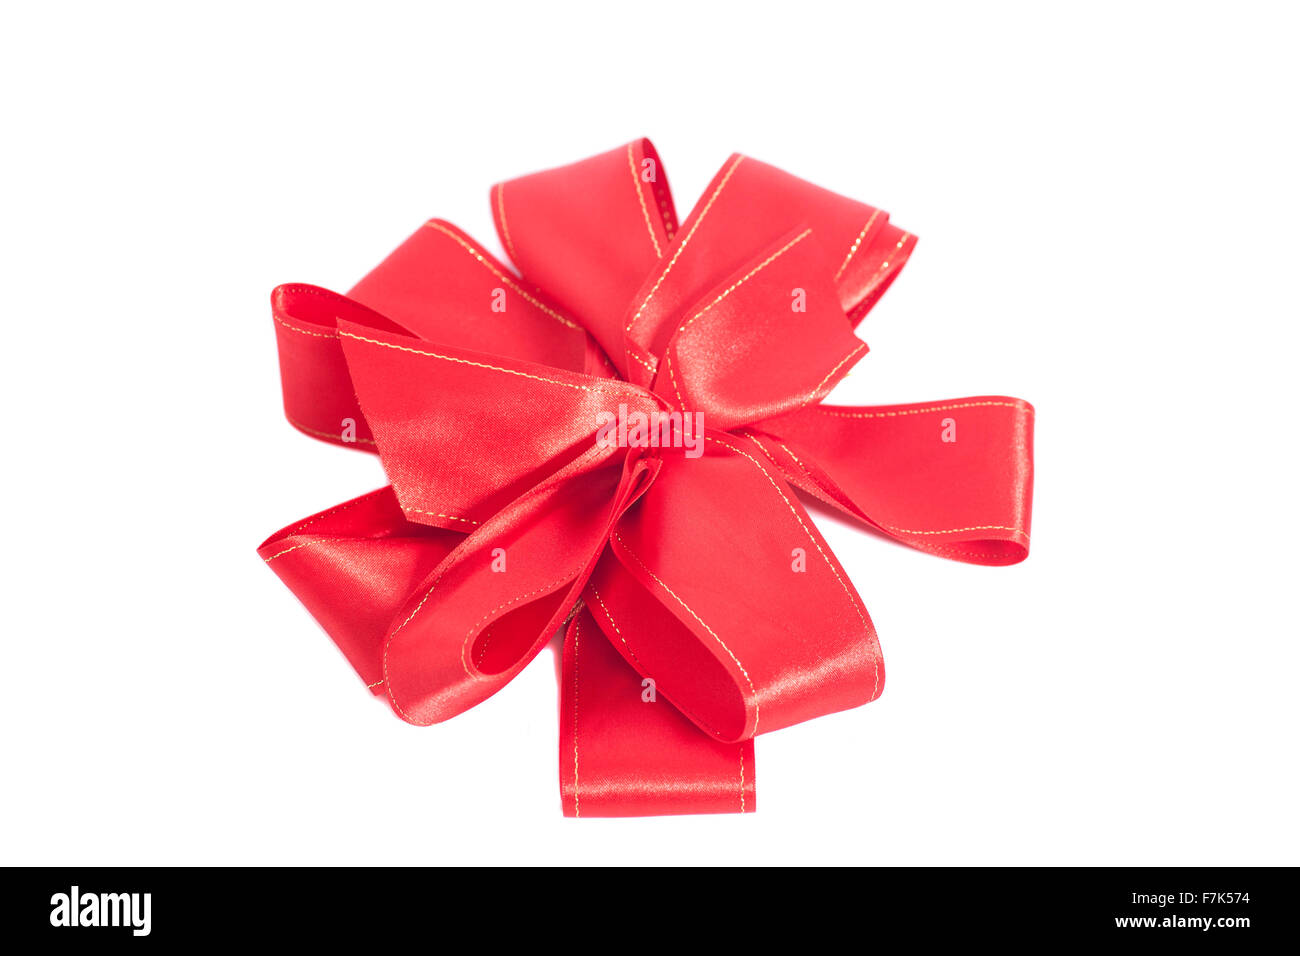 big red satin gift